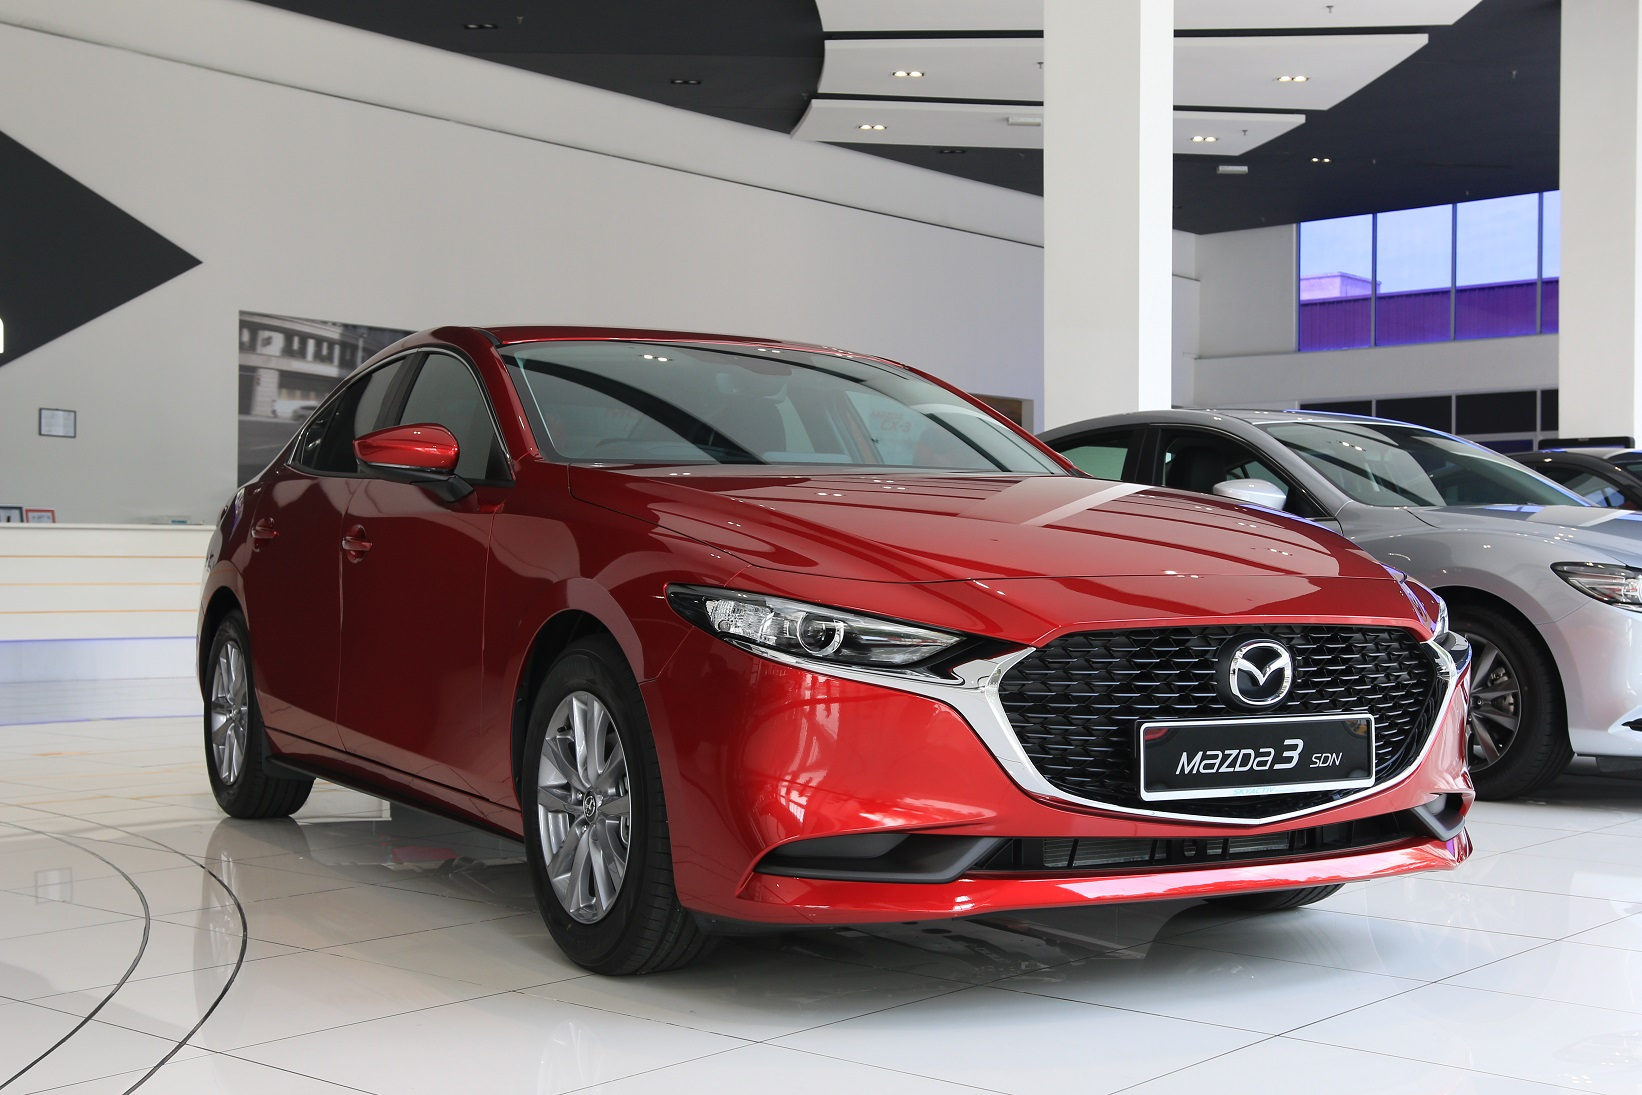 Mazda 3 Completes its Hat Trick- Third Award in a Month 9